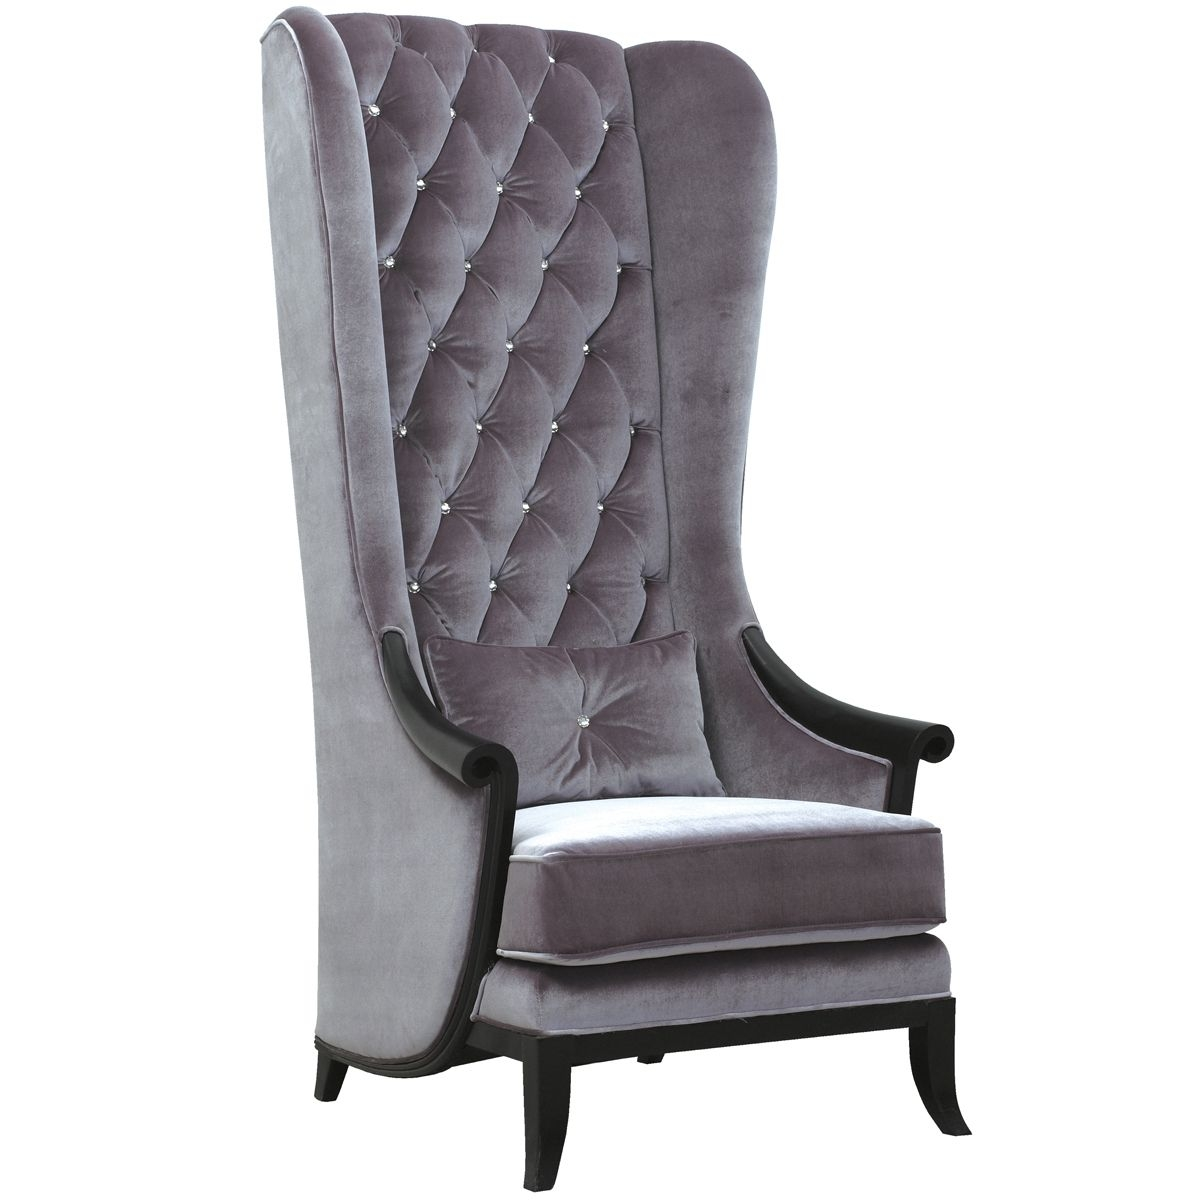 High Wing Back Chairs